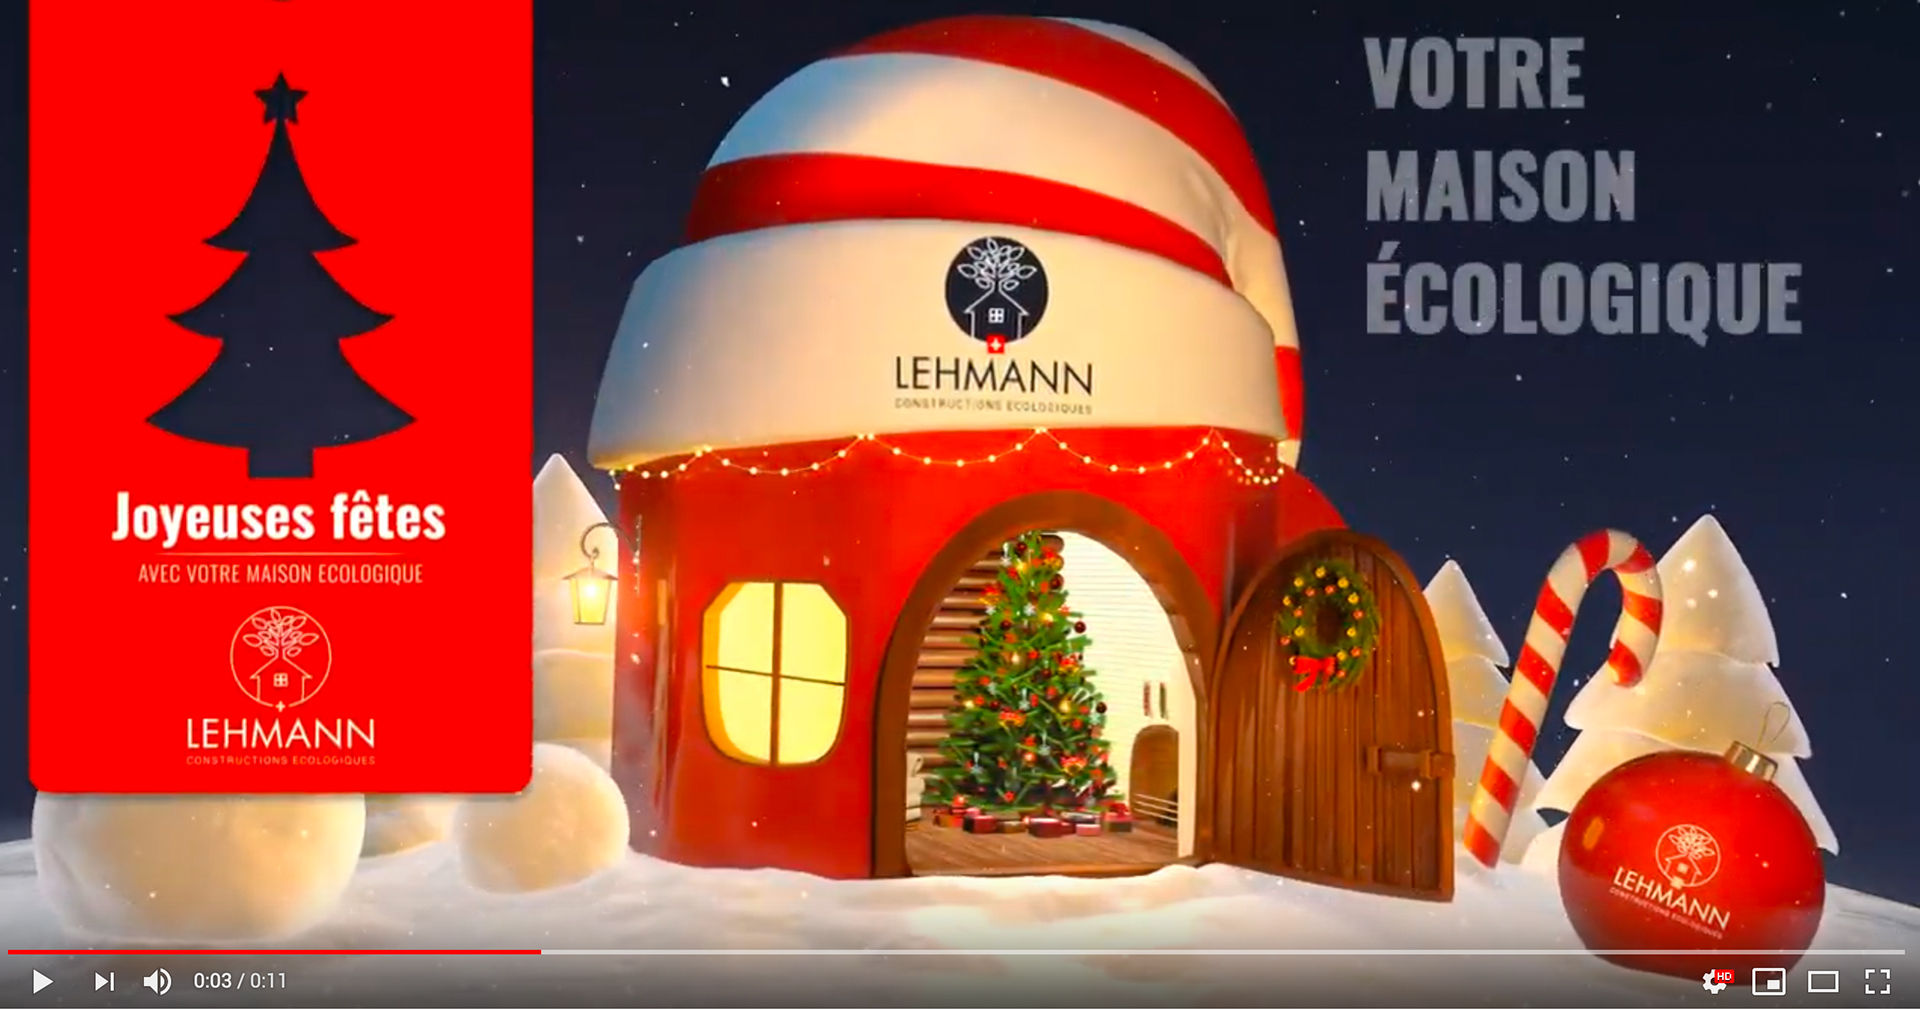 Vidéo Marketing – Vœux de Noël